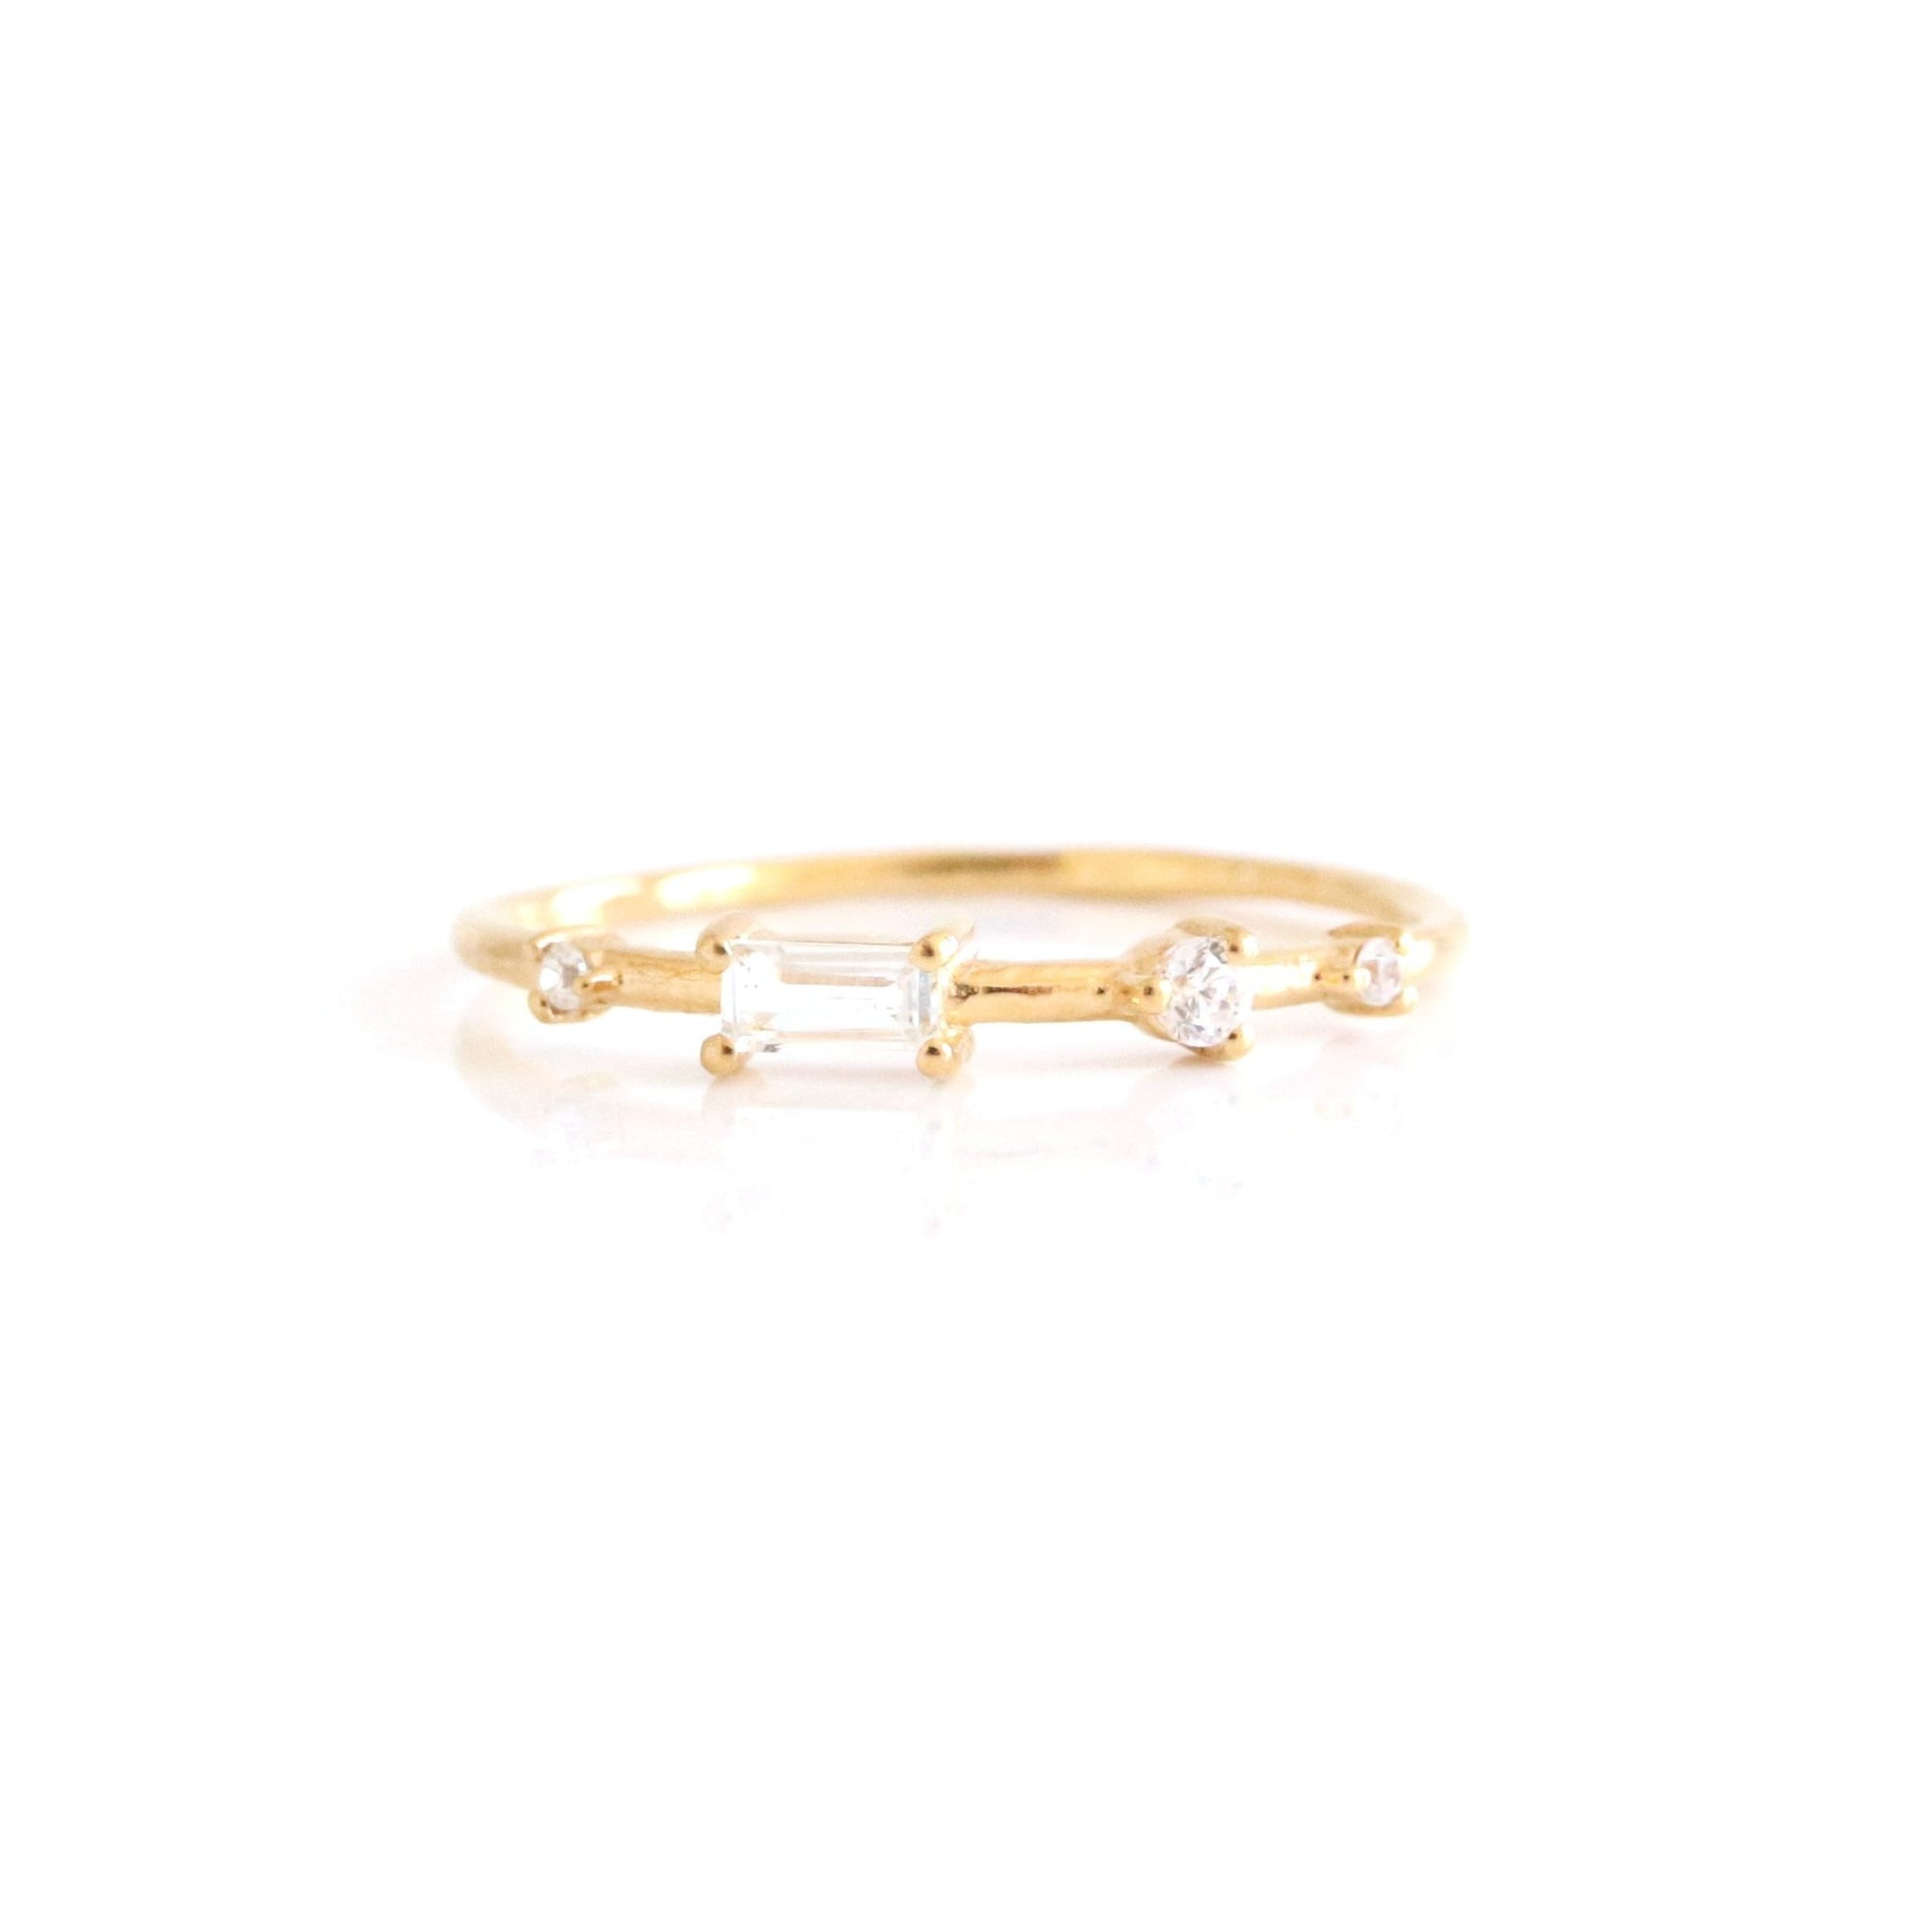 Loyal Dancing Stacking Ring - White Topaz, Cubic Zirconia & Gold - SO PRETTY CARA COTTER